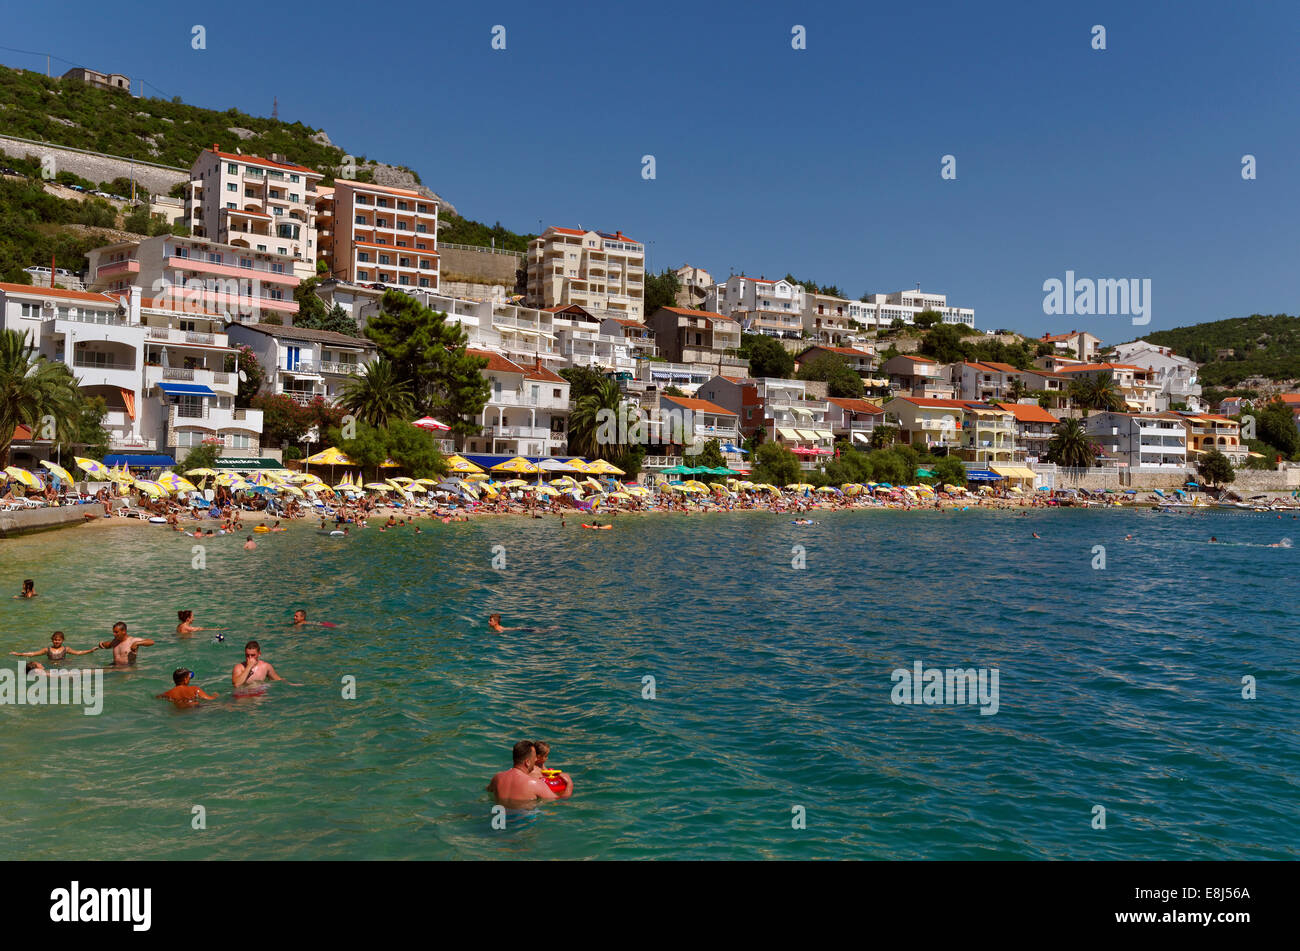 Adriatic coastal town of Neum in Herzegovina-Neretva Canton, Bosnia and Herzegovina - Stock Image